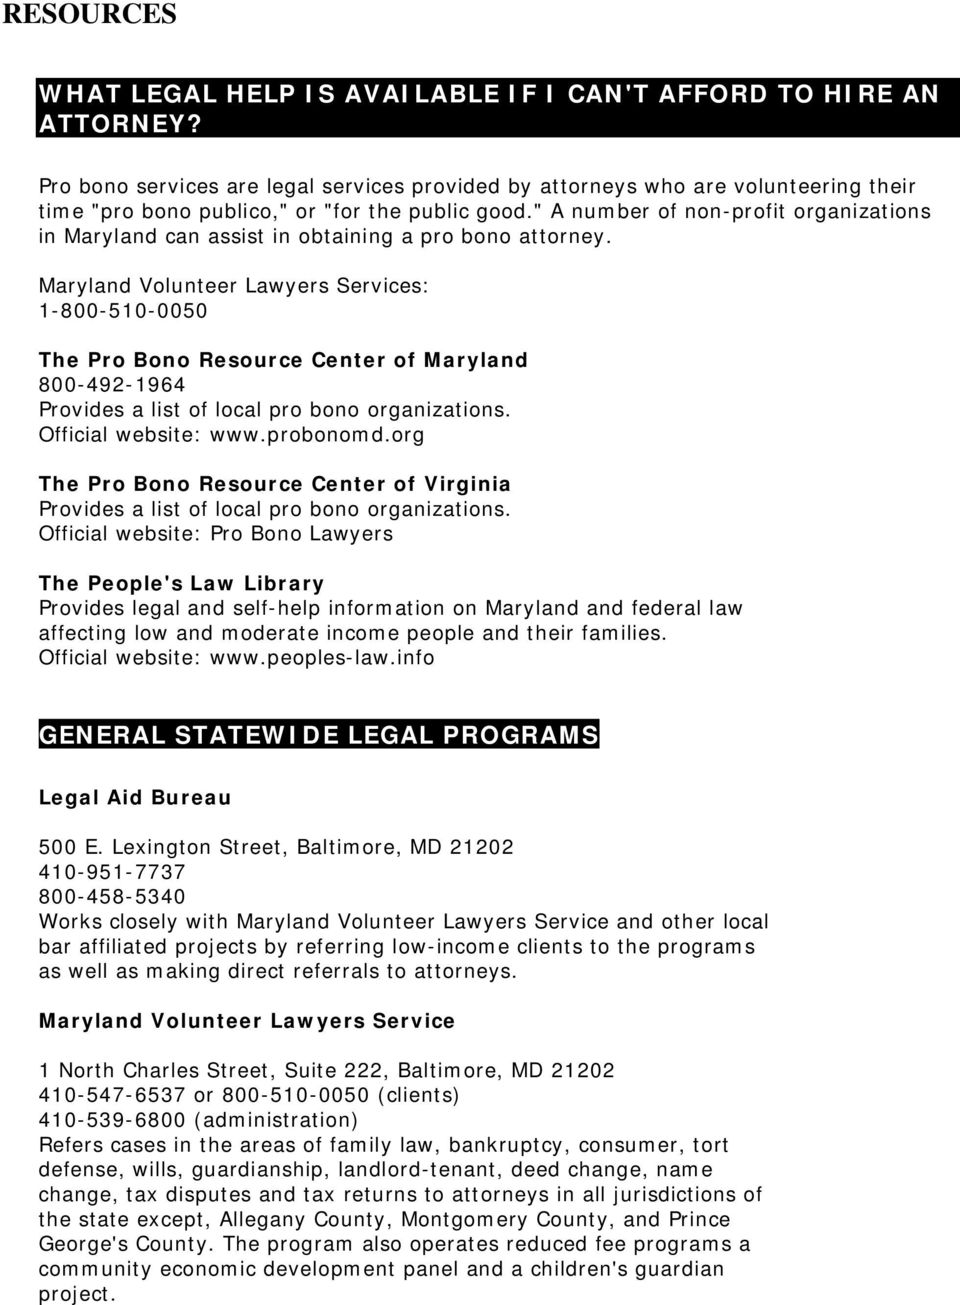 """ A number of non-profit organizations in Maryland can assist in obtaining a pro bono attorney."